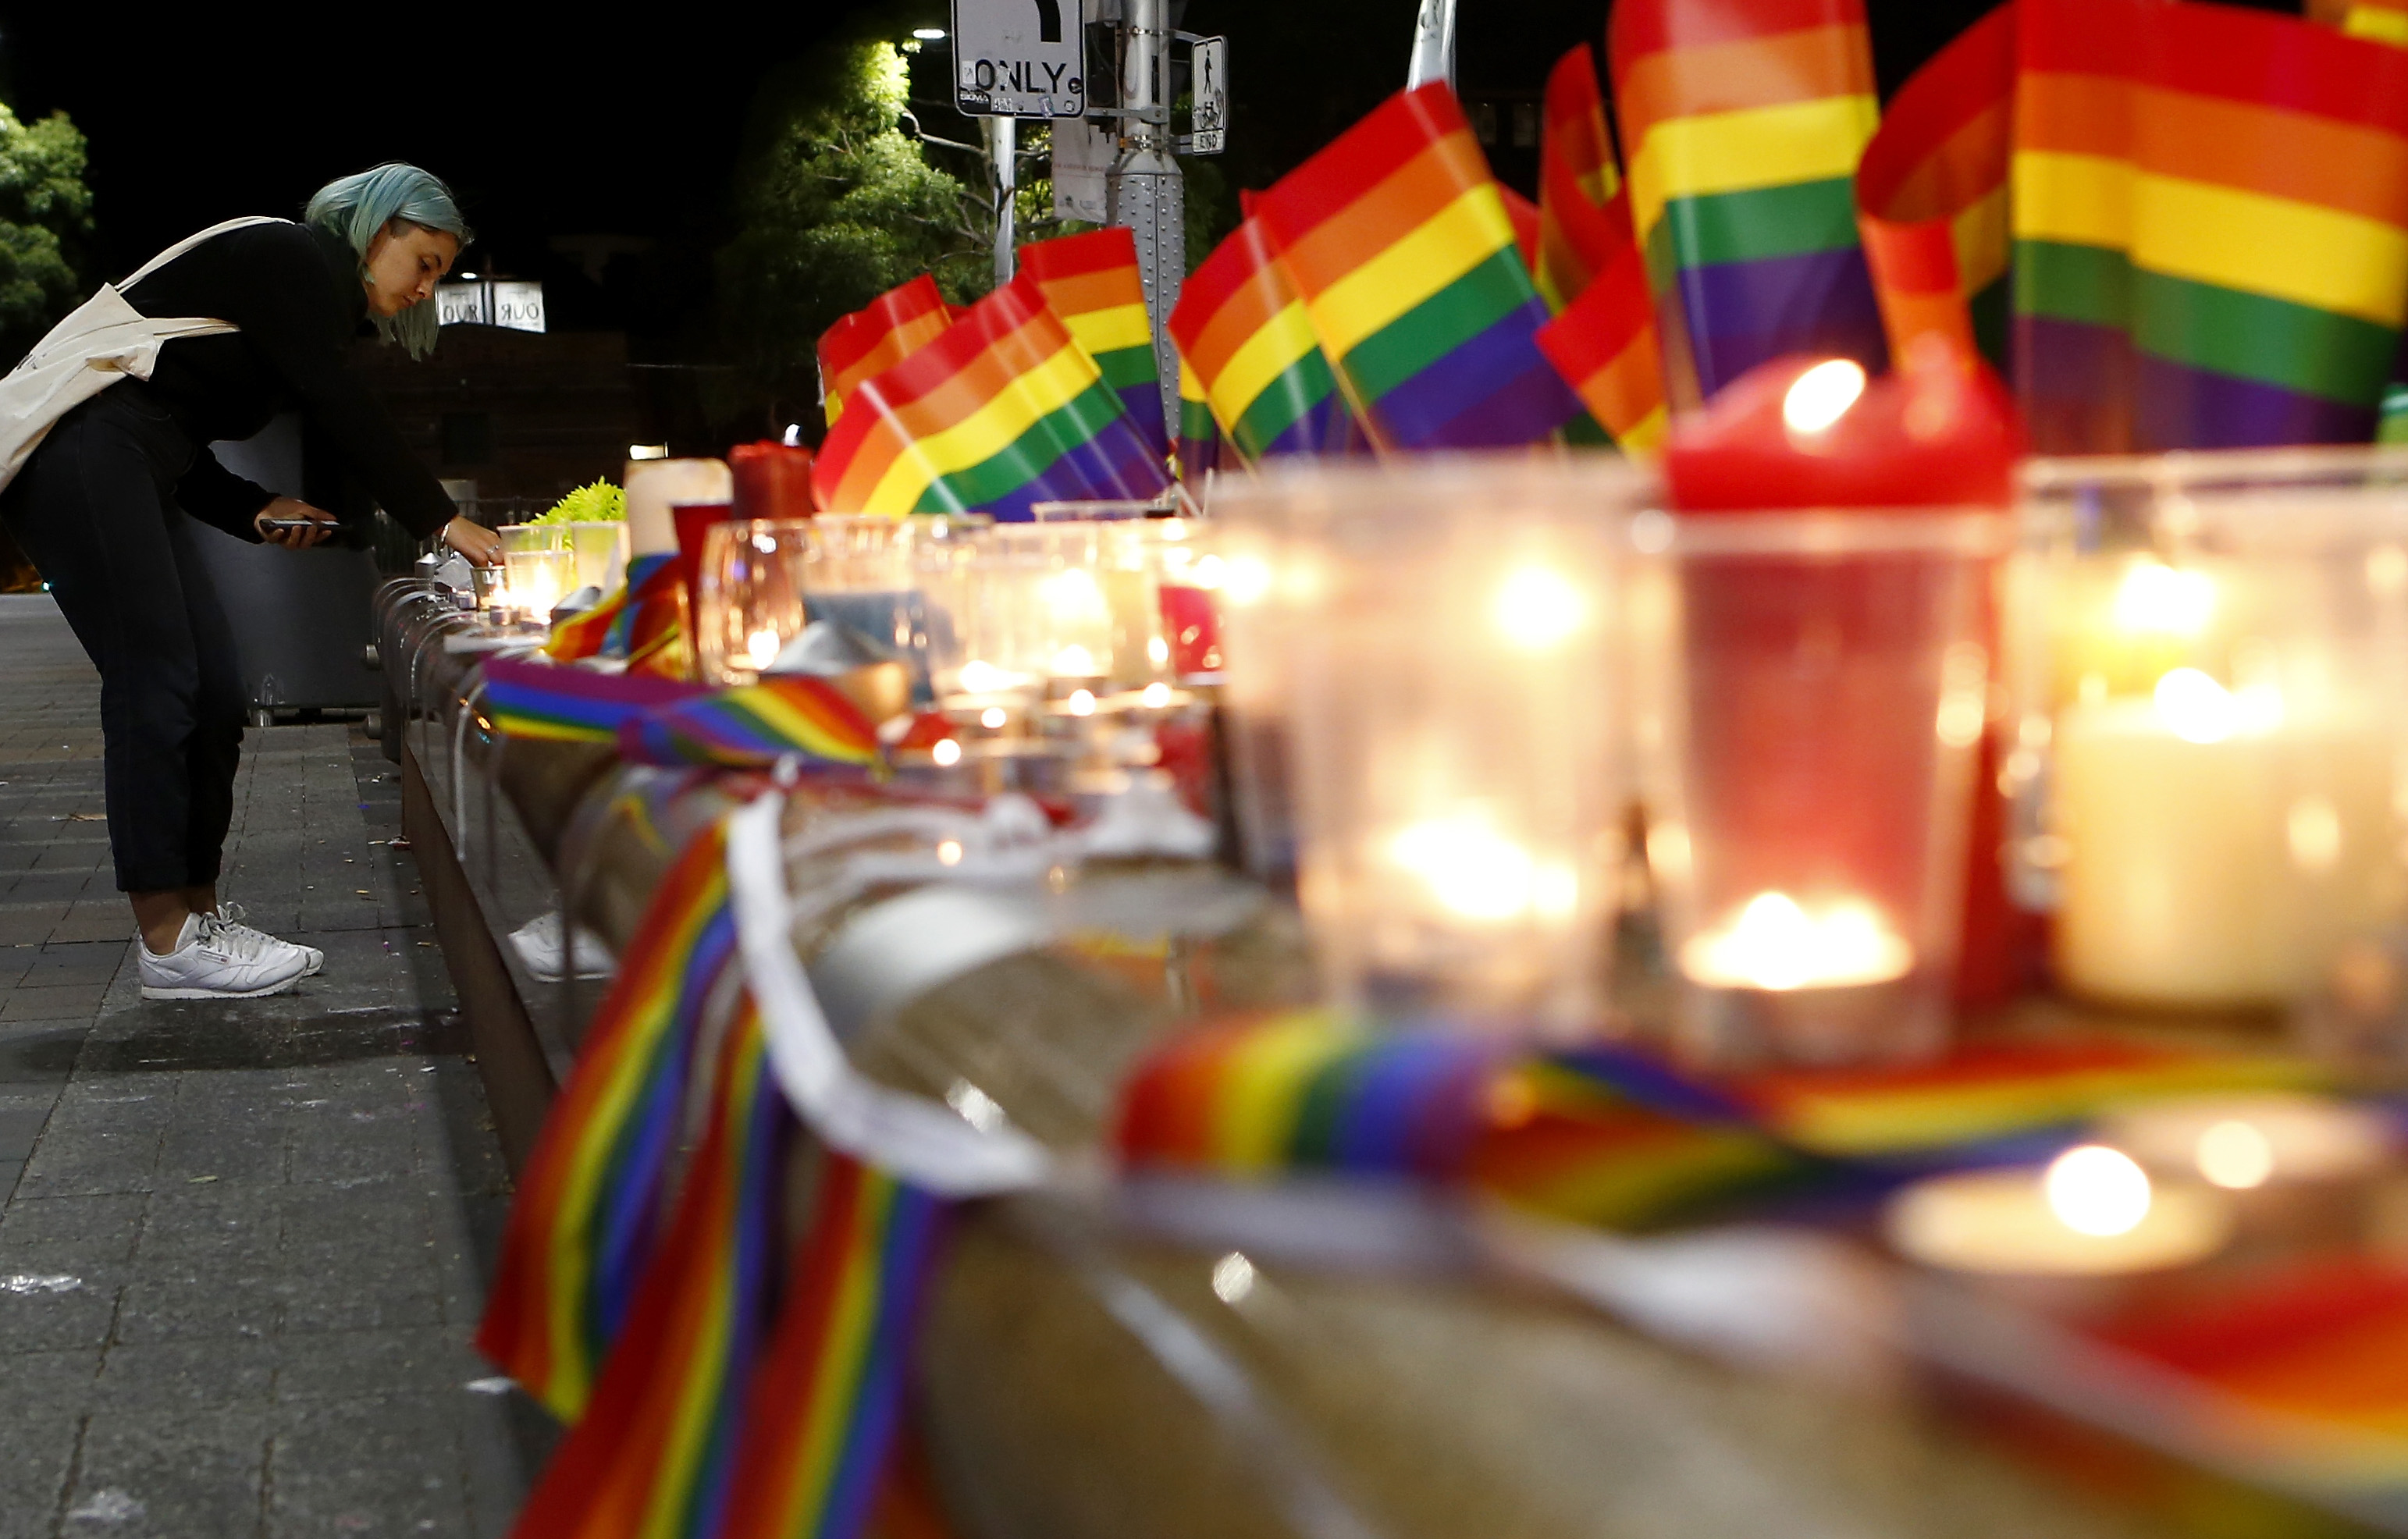 Australians Hold Candlelit Vigils For Victims Of Orlando Nightclub Shooting